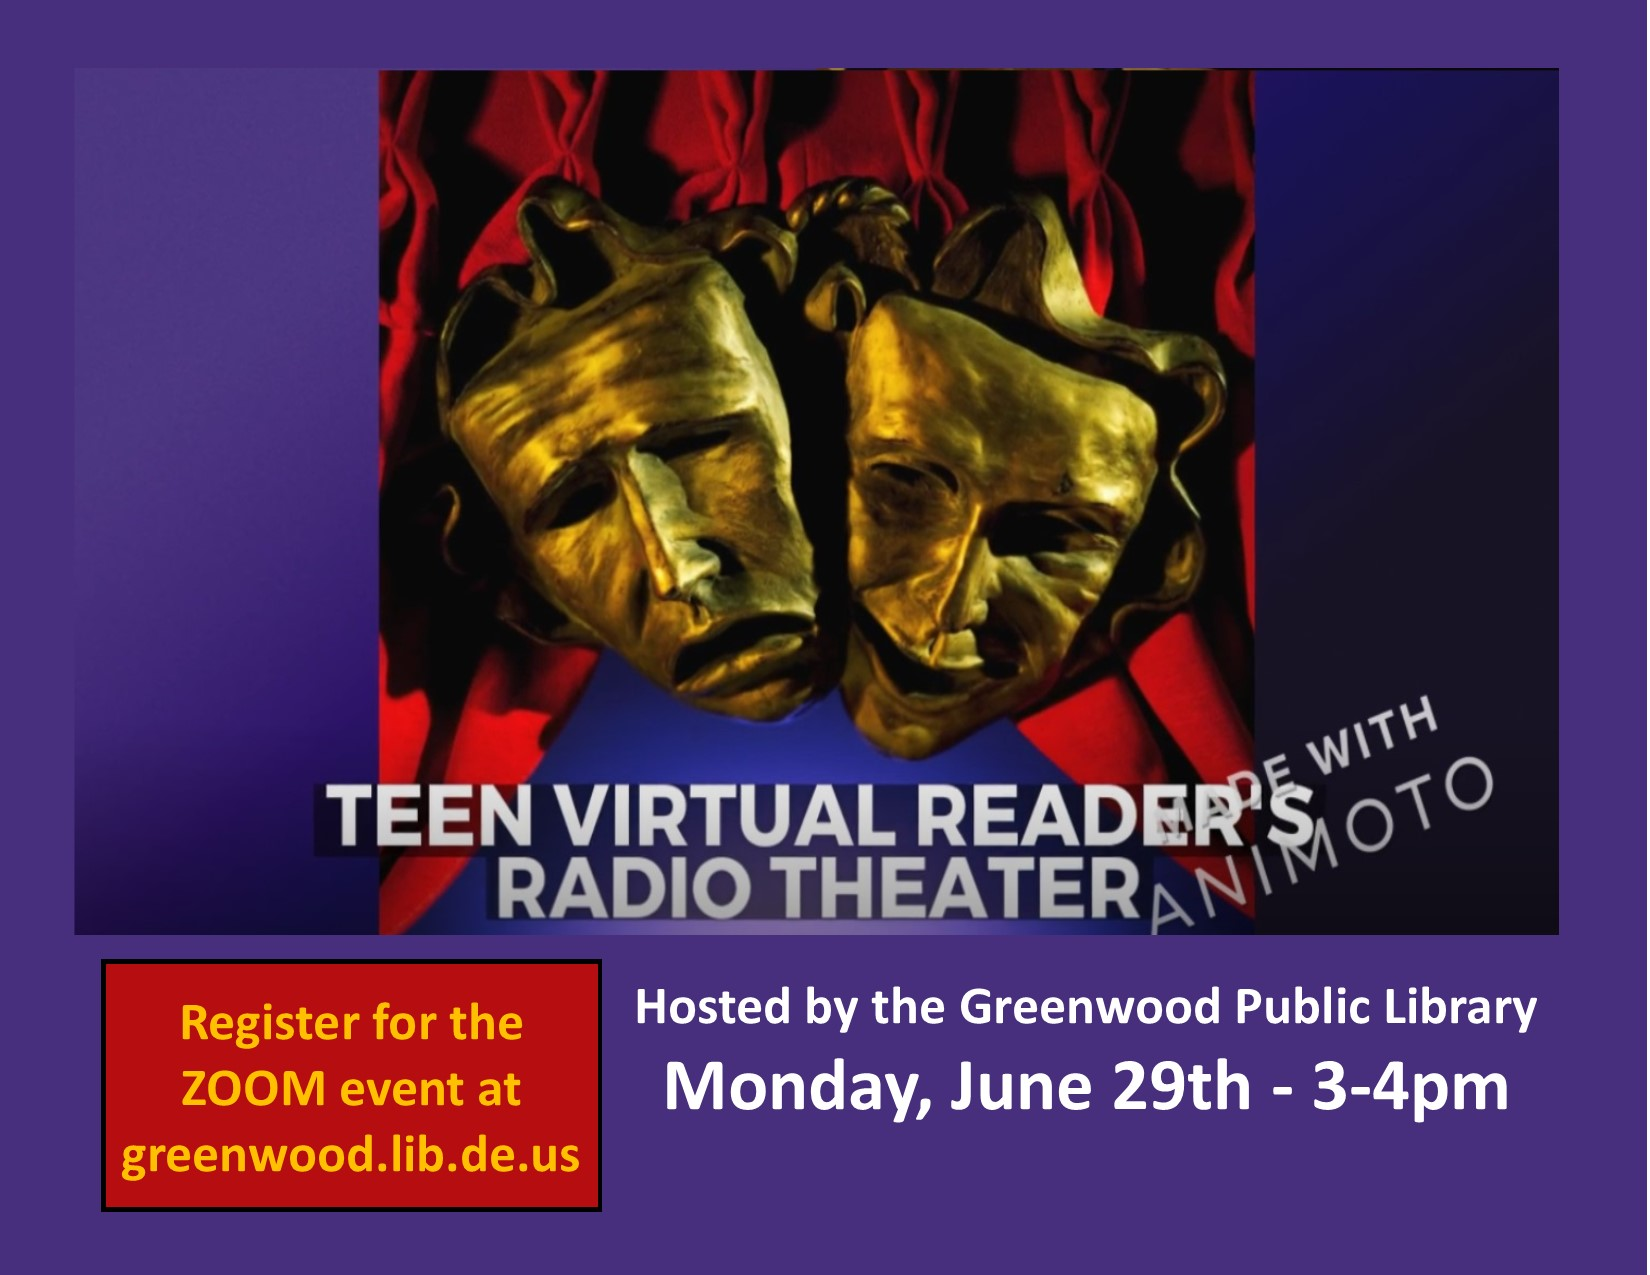 Greenwood Library's Virtual Reader's/Radio Theater